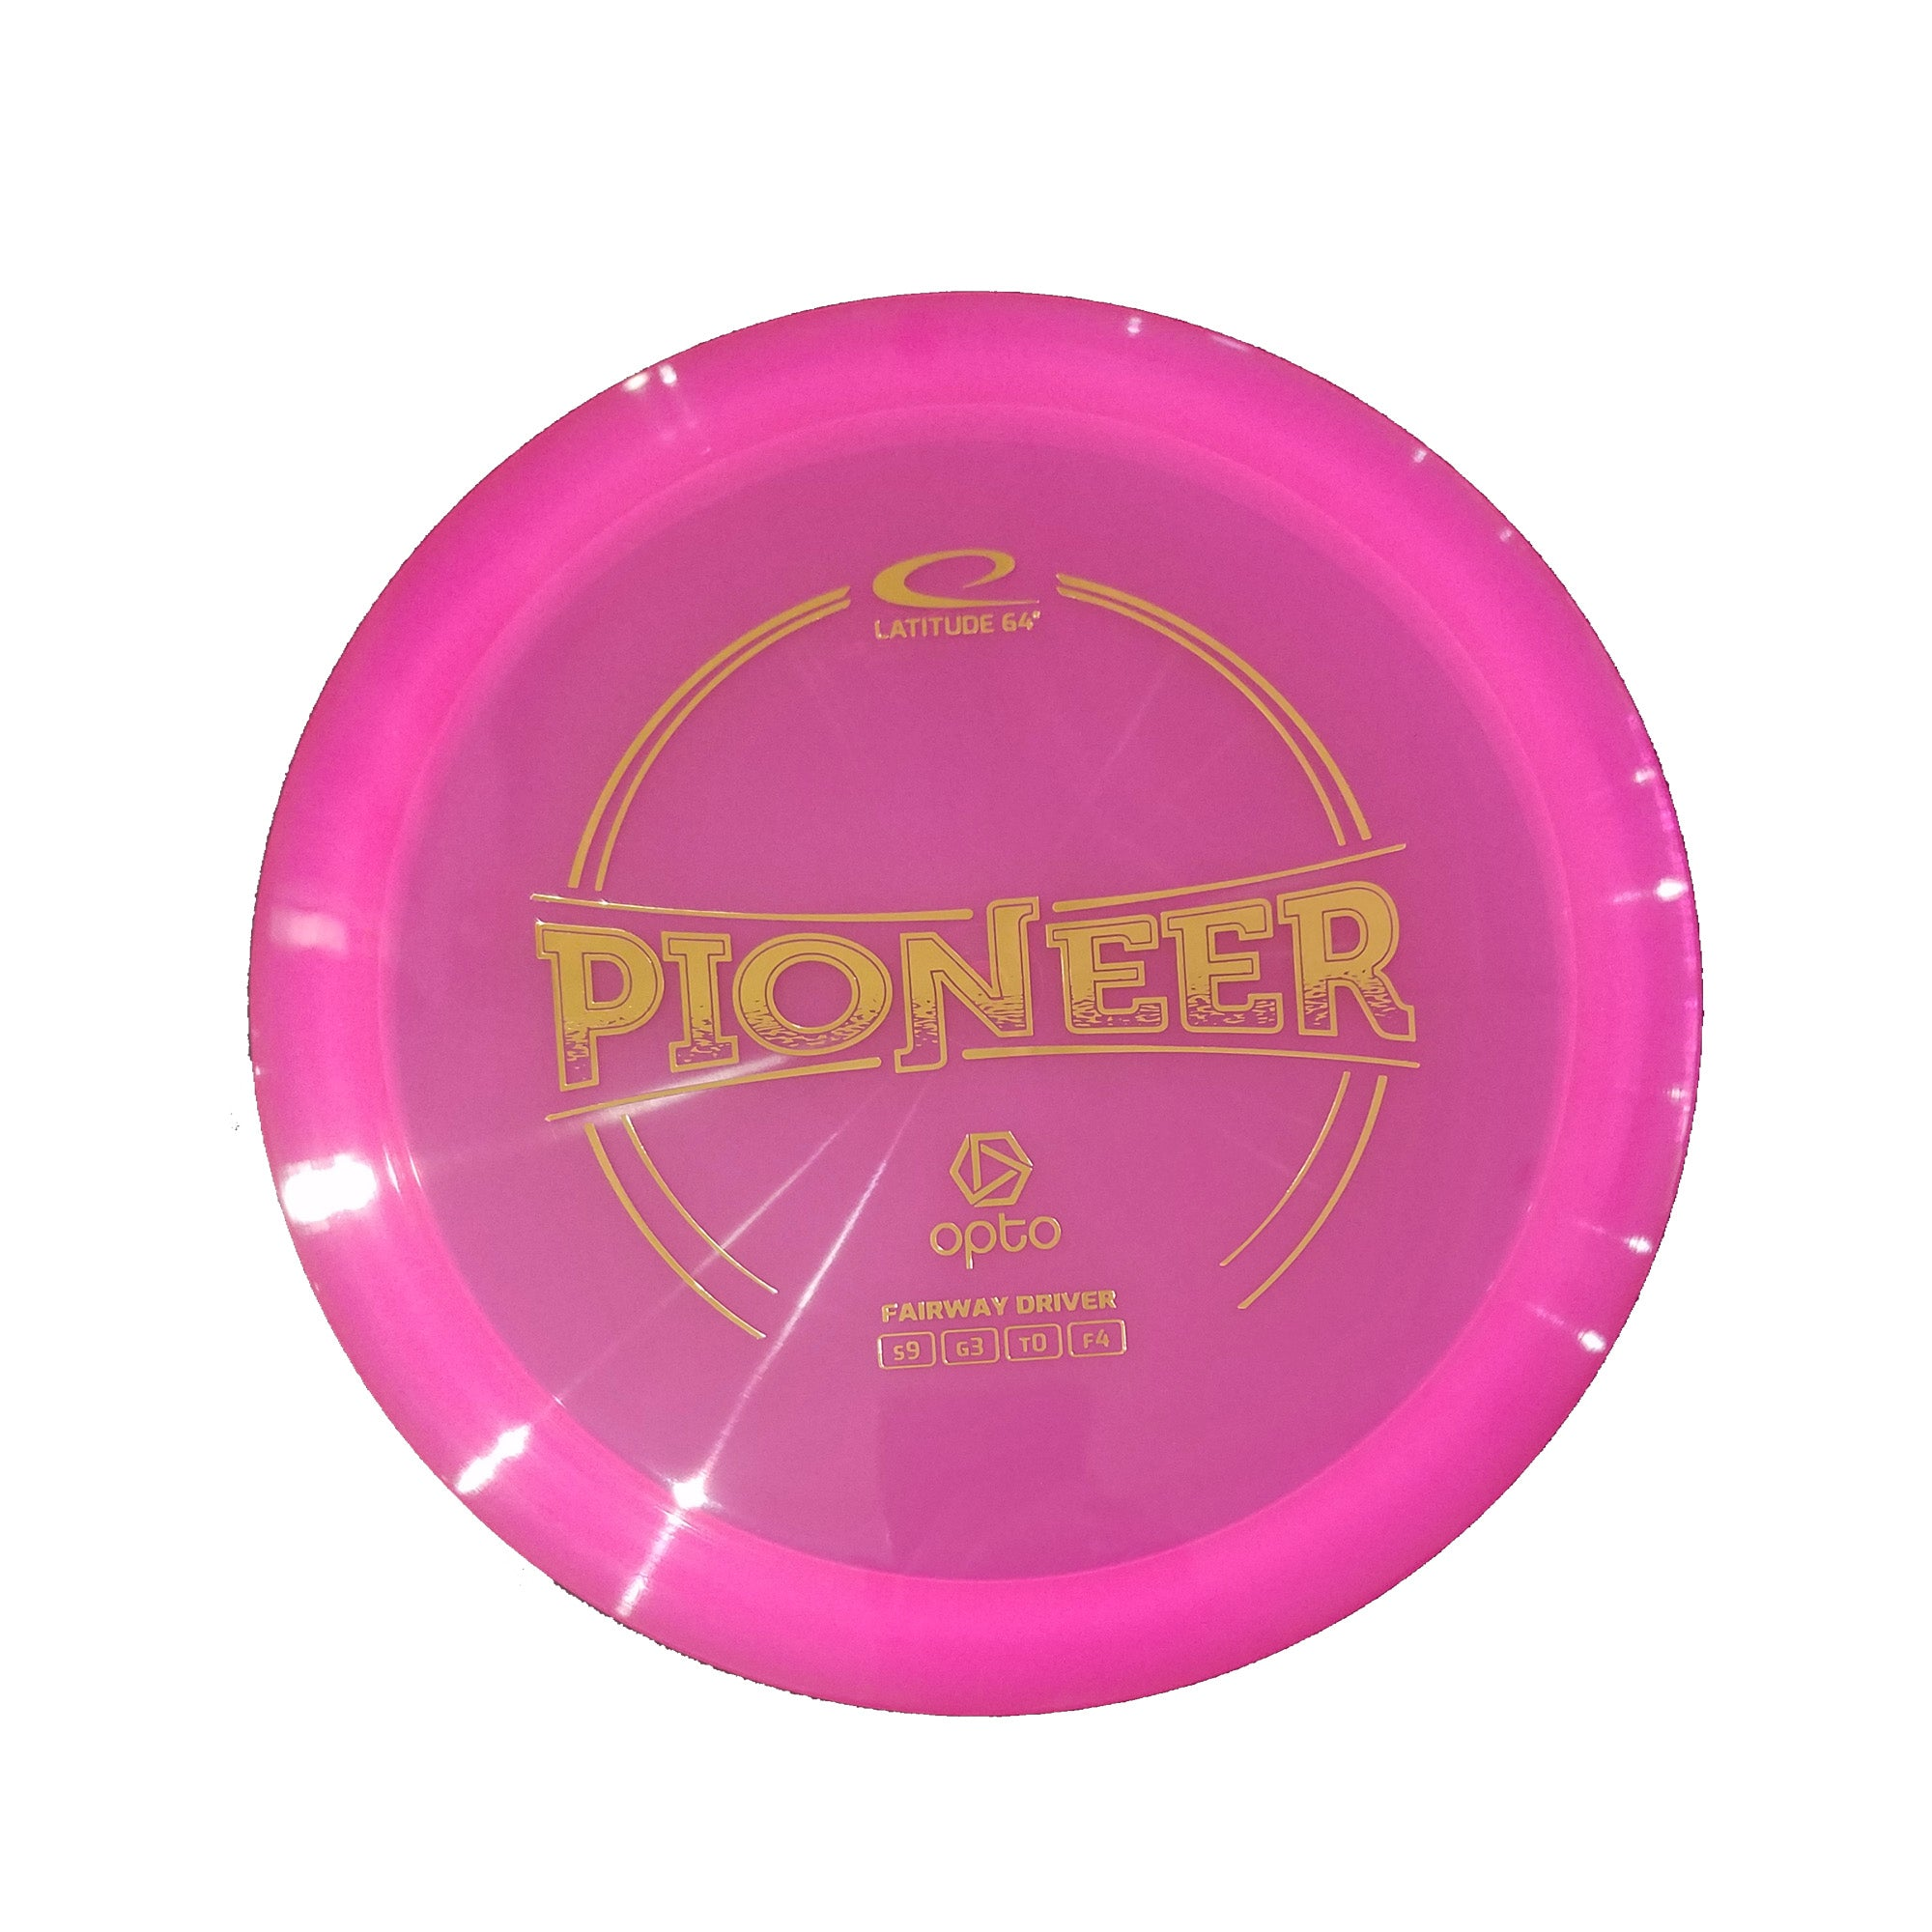 Latitude 64 Opto Pioneer Fairway Driver Disc - 170g